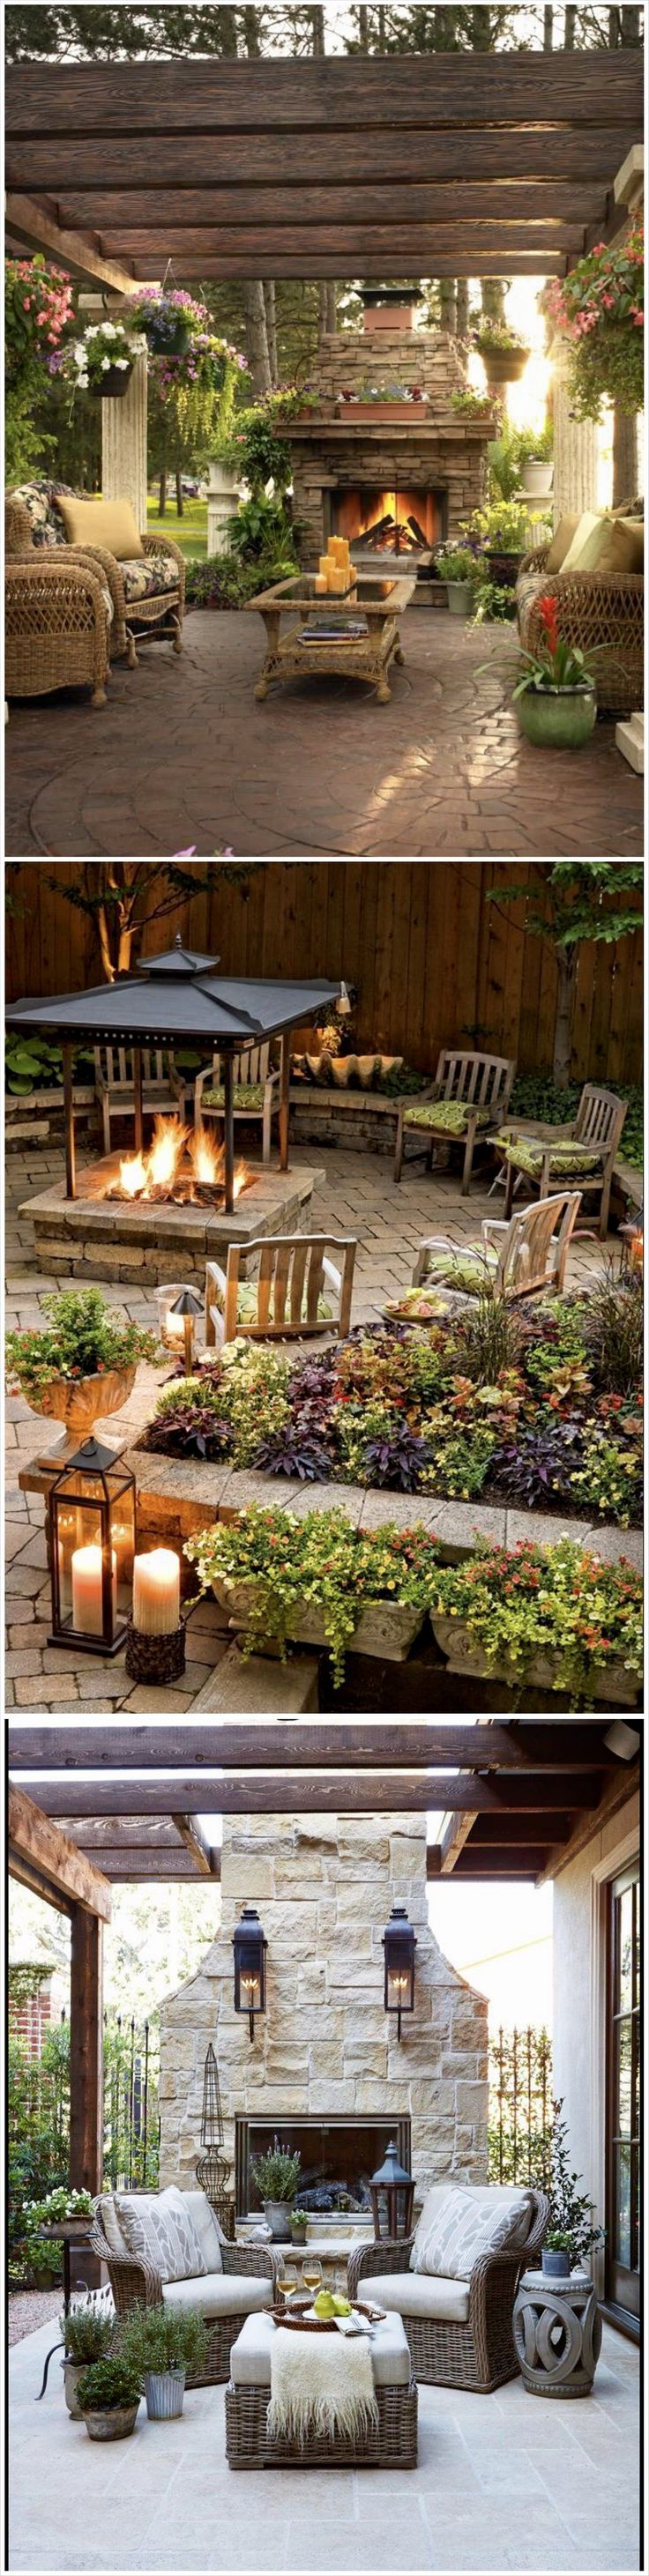 Best 25 backyard paradise ideas on pinterest traditional outdoor string lights small - Types fire pits cozy outdoor spaces ...